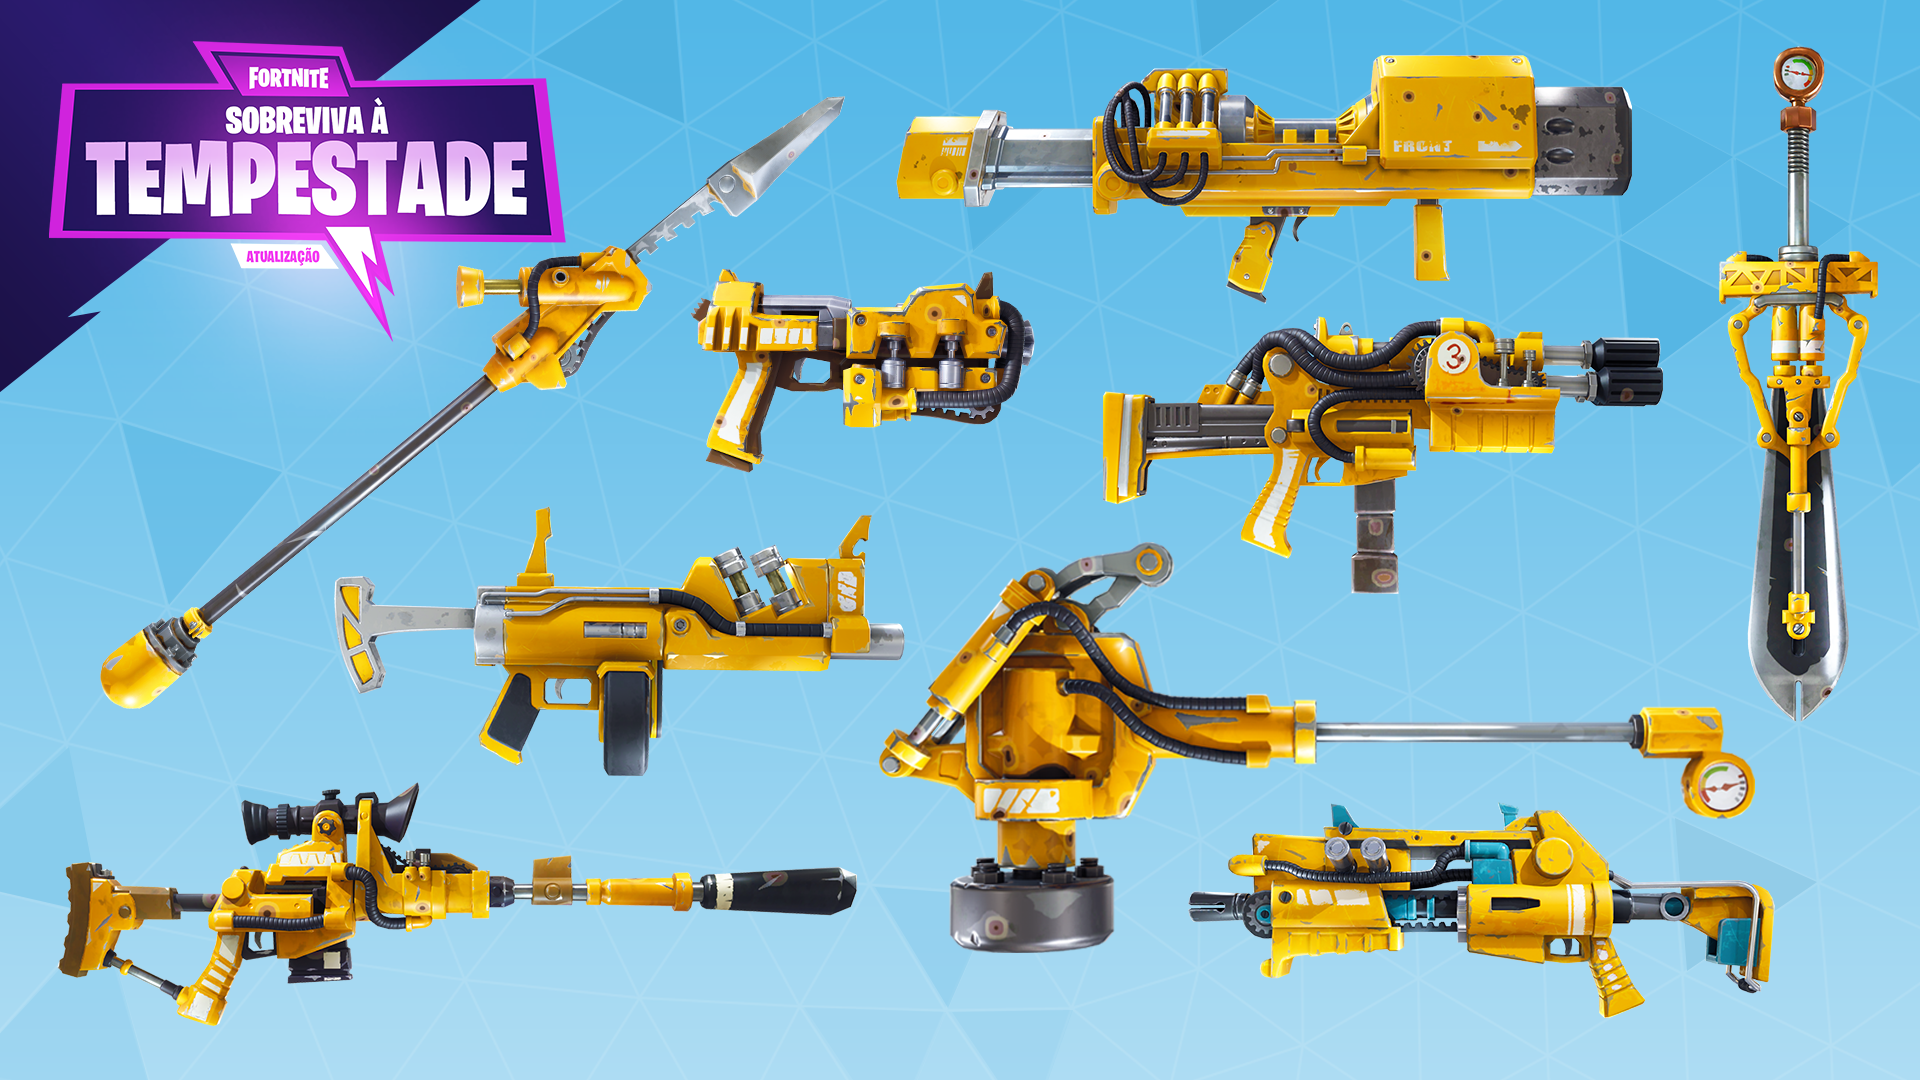 Fortnite%2Fblog%2Fsurvive-the-storm---release-notes%2FPT_Hydraulic-Weapons-1920x1080-9c235d7581a81965b681fae45d76fbb983a71bb6